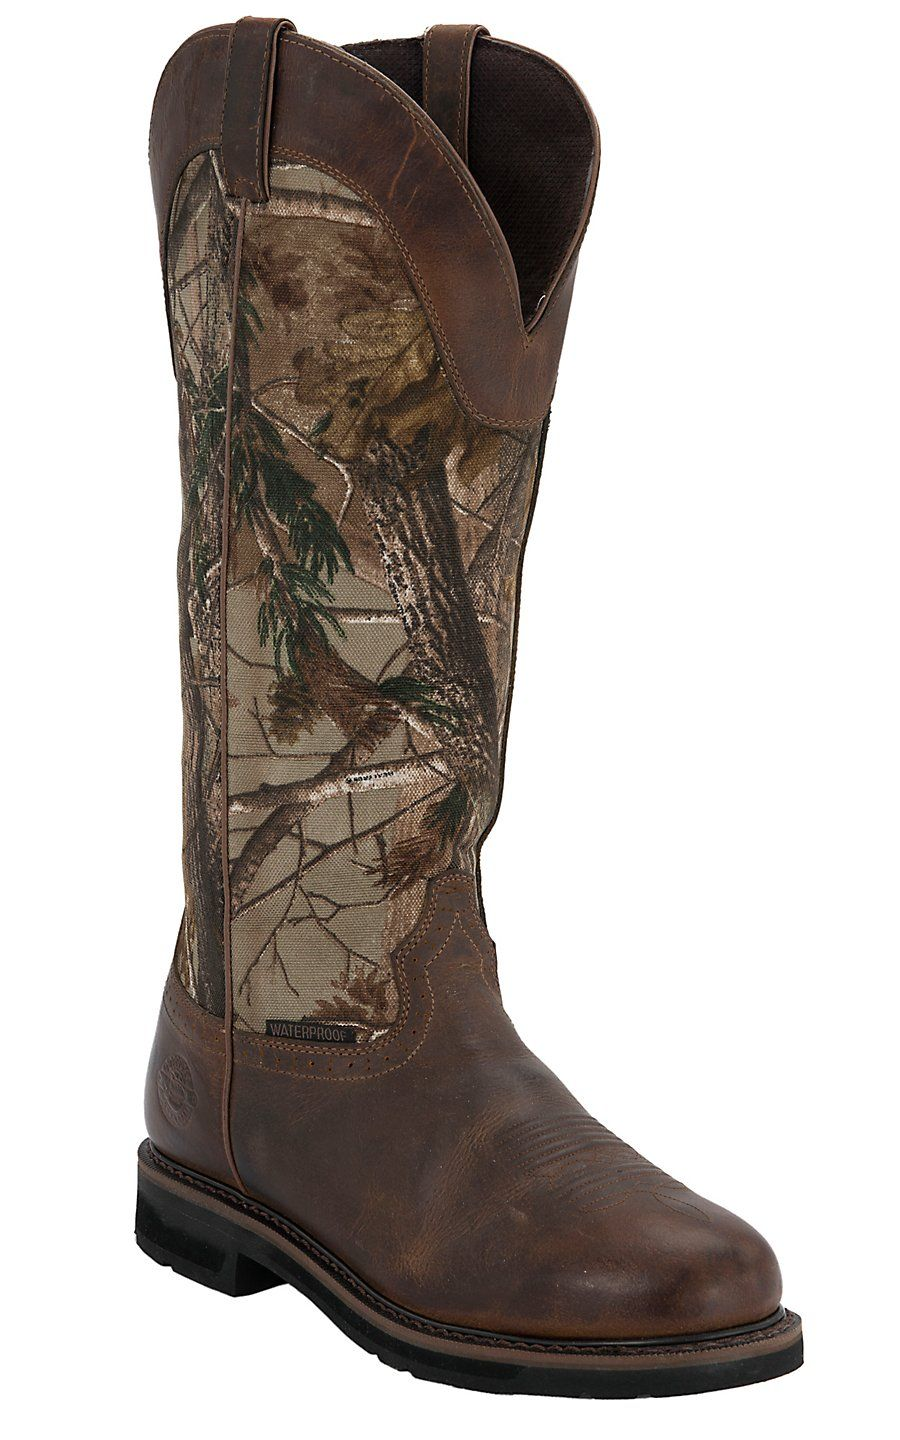 Justin 174 Stampede Men S Rugged Tan With Real Tree Camo